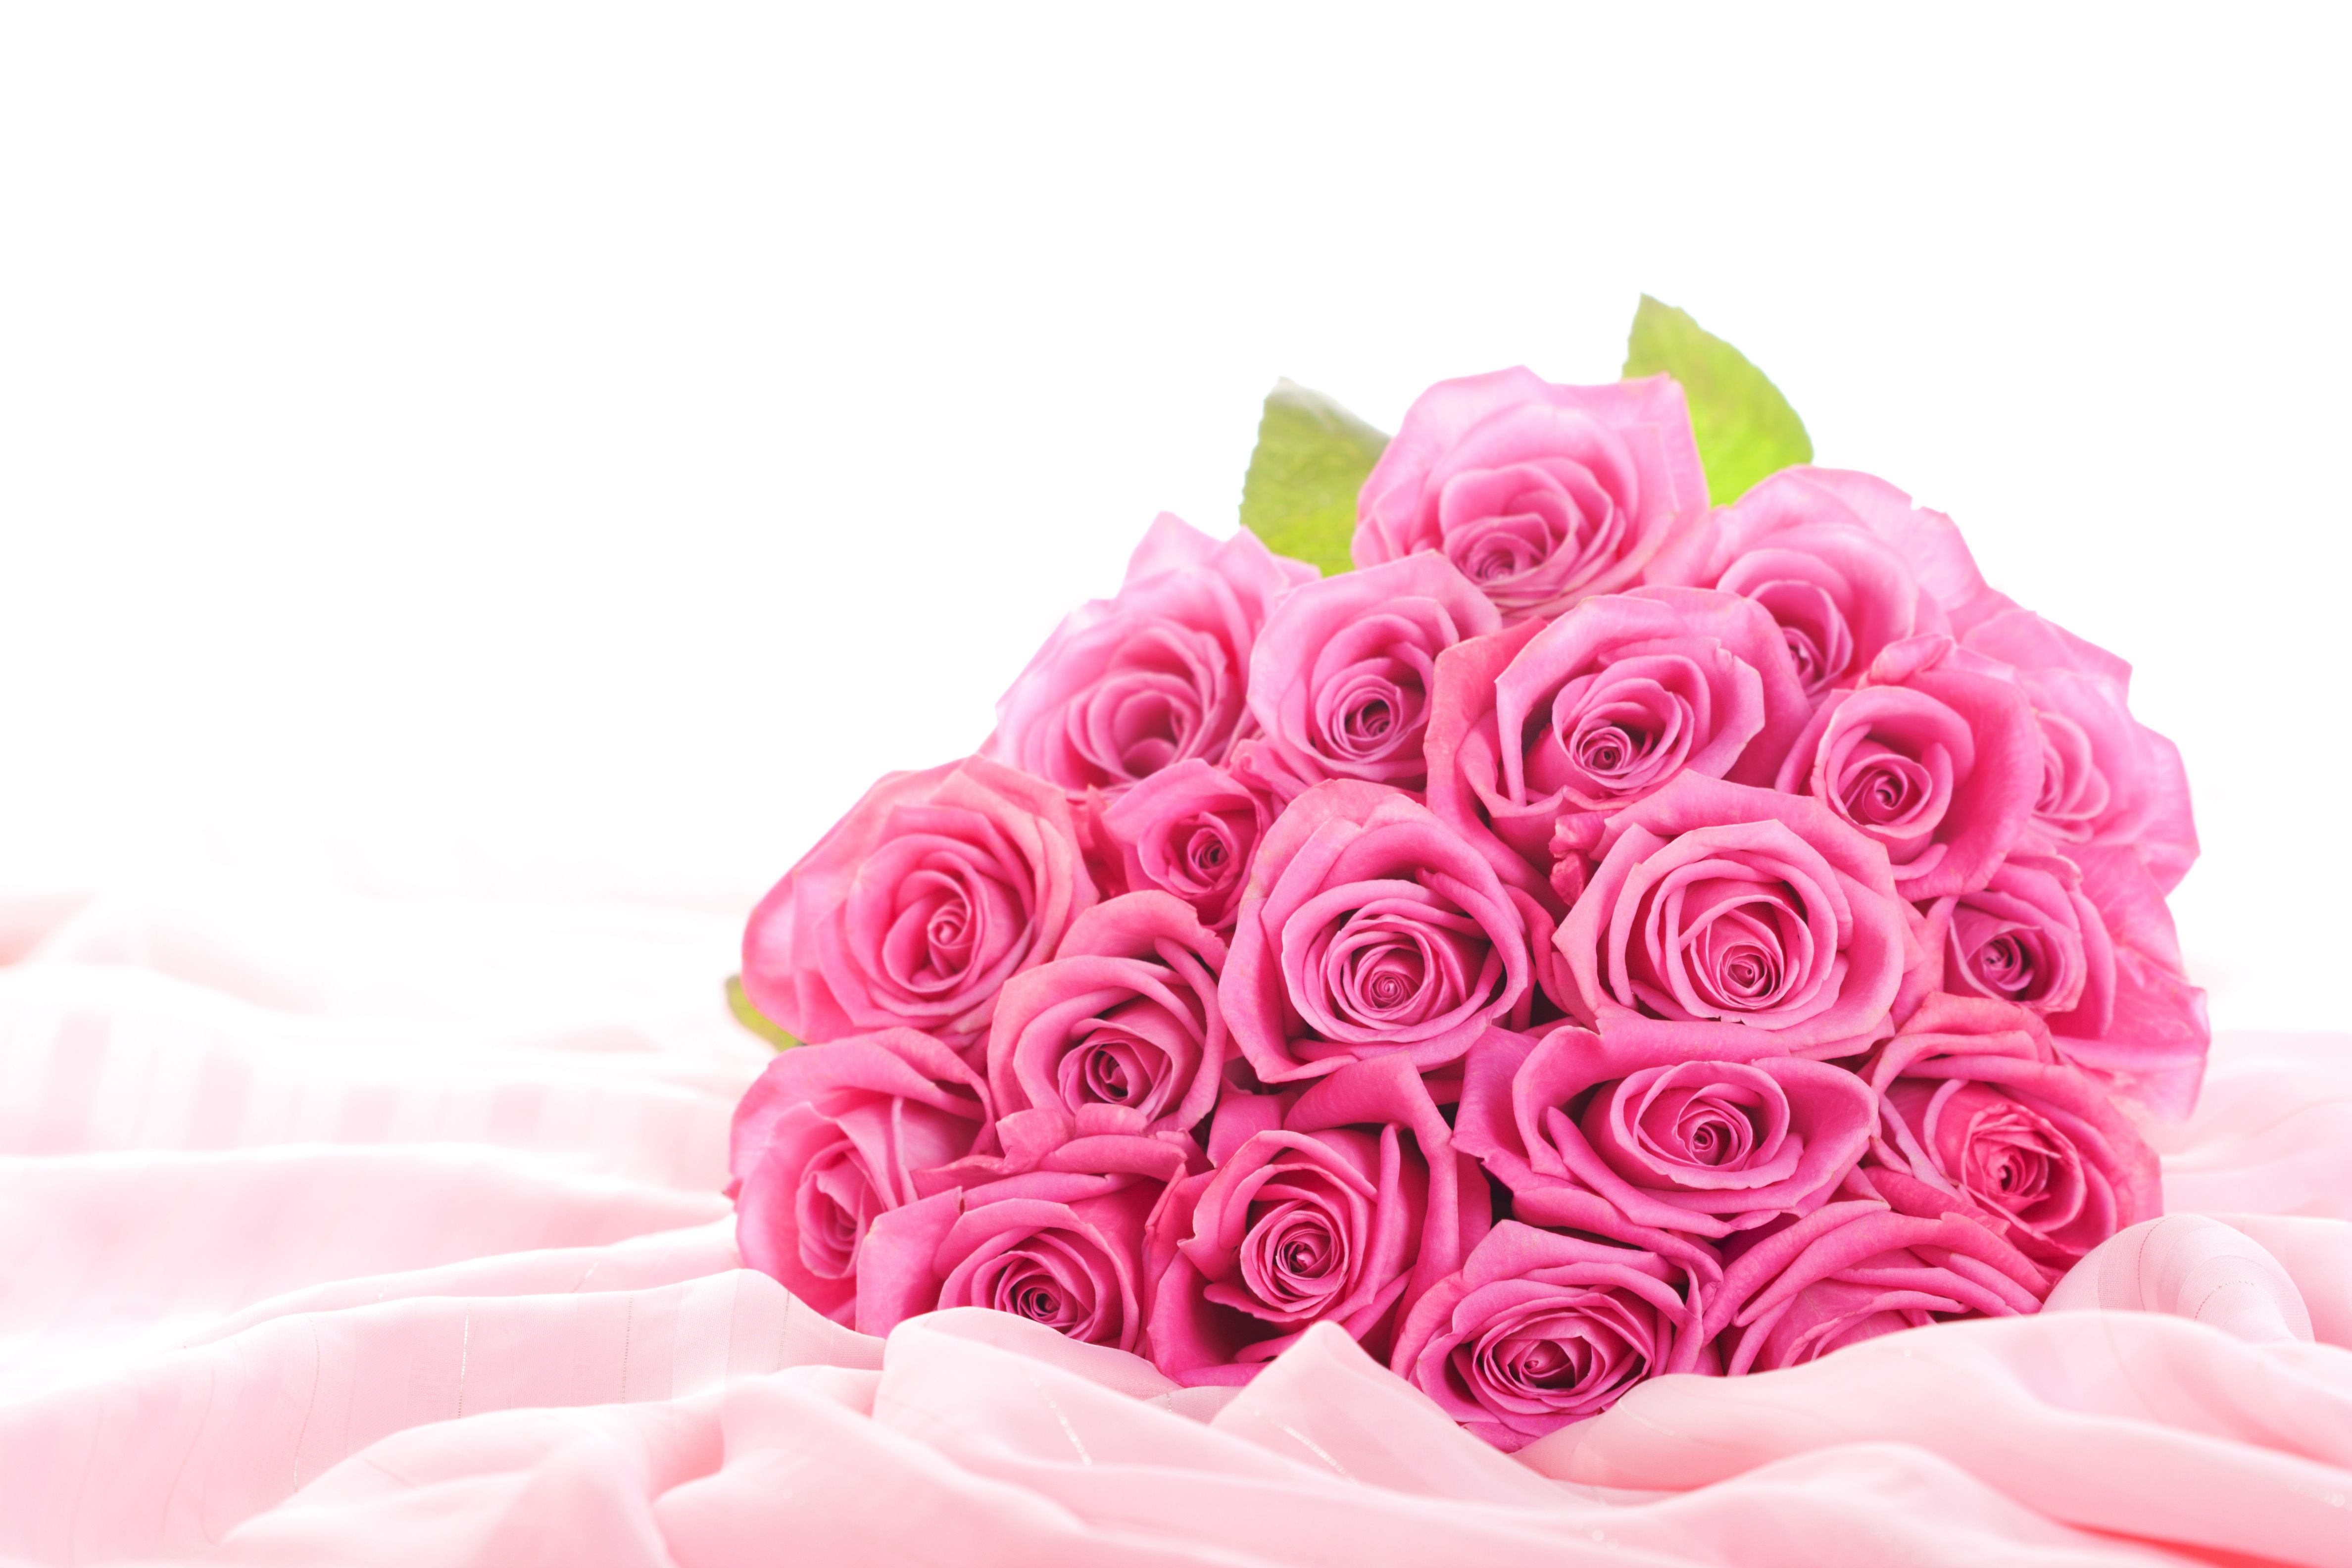 Elegant pink rose bouquet flowers pinterest pink rose bouquet pink roses bouquet bunch and hand tied bouquet flowers mightylinksfo Choice Image